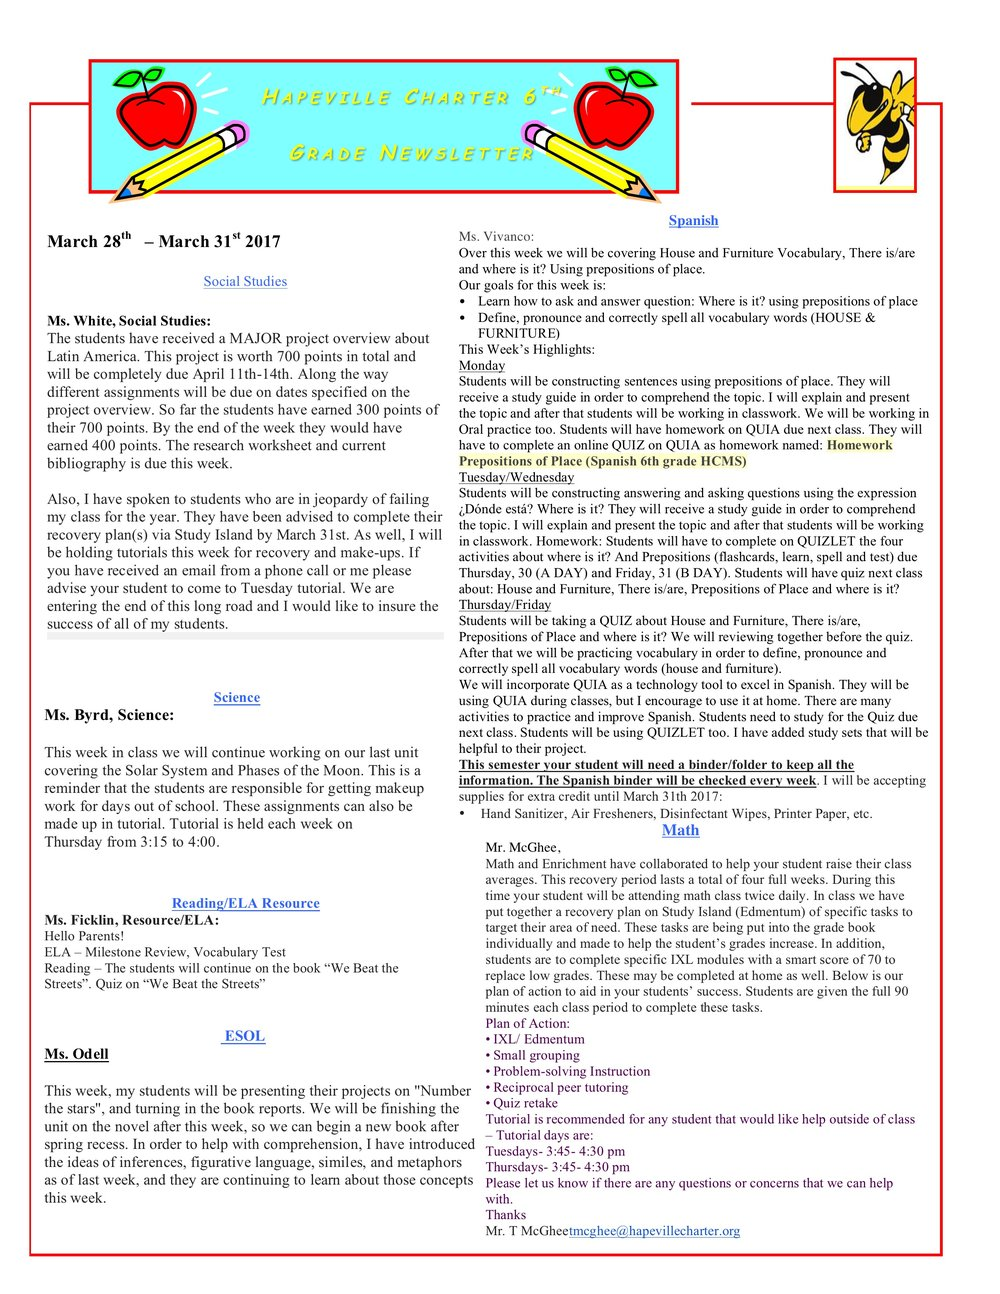 Newsletter Image6th Grade Newsletter 3-28-2017.jpeg